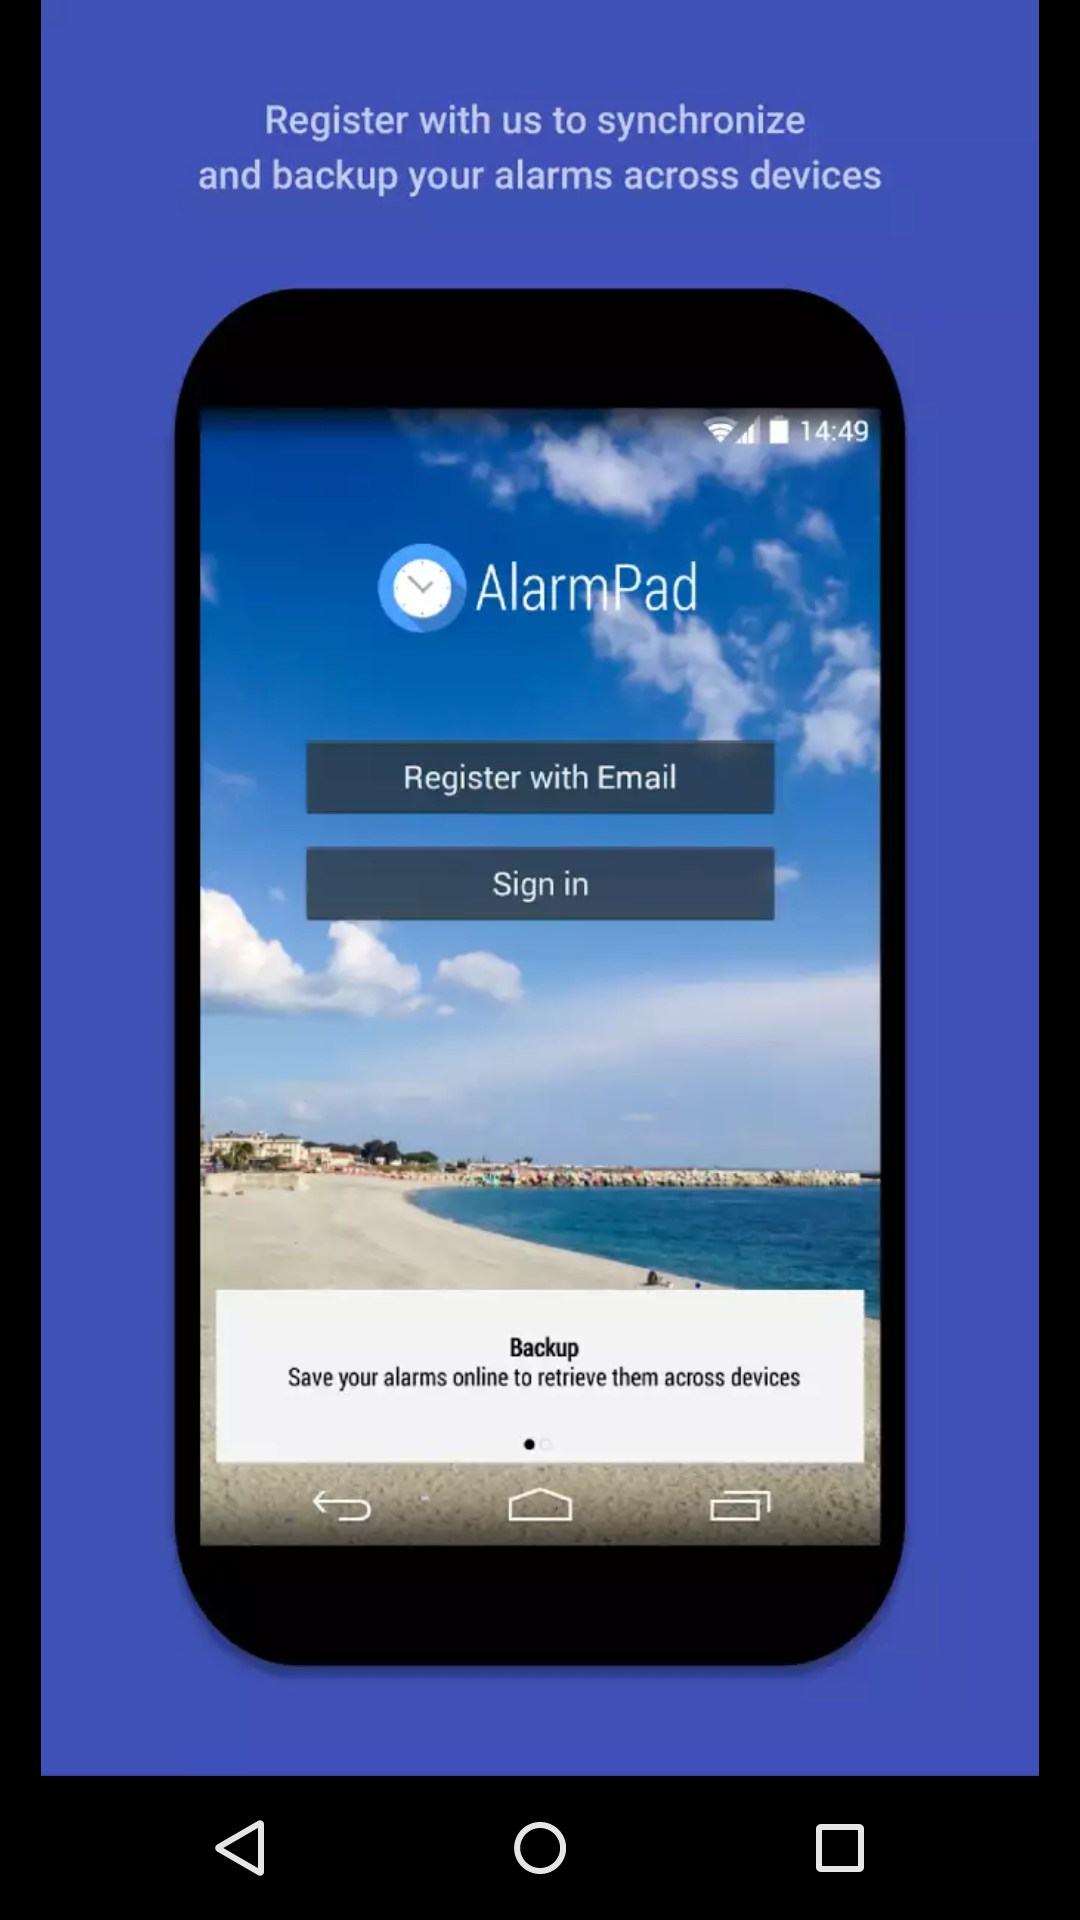 android s4 Root samsung galaxy s4 gt-i9500 with kingoroot, the best one-click android root software for free.